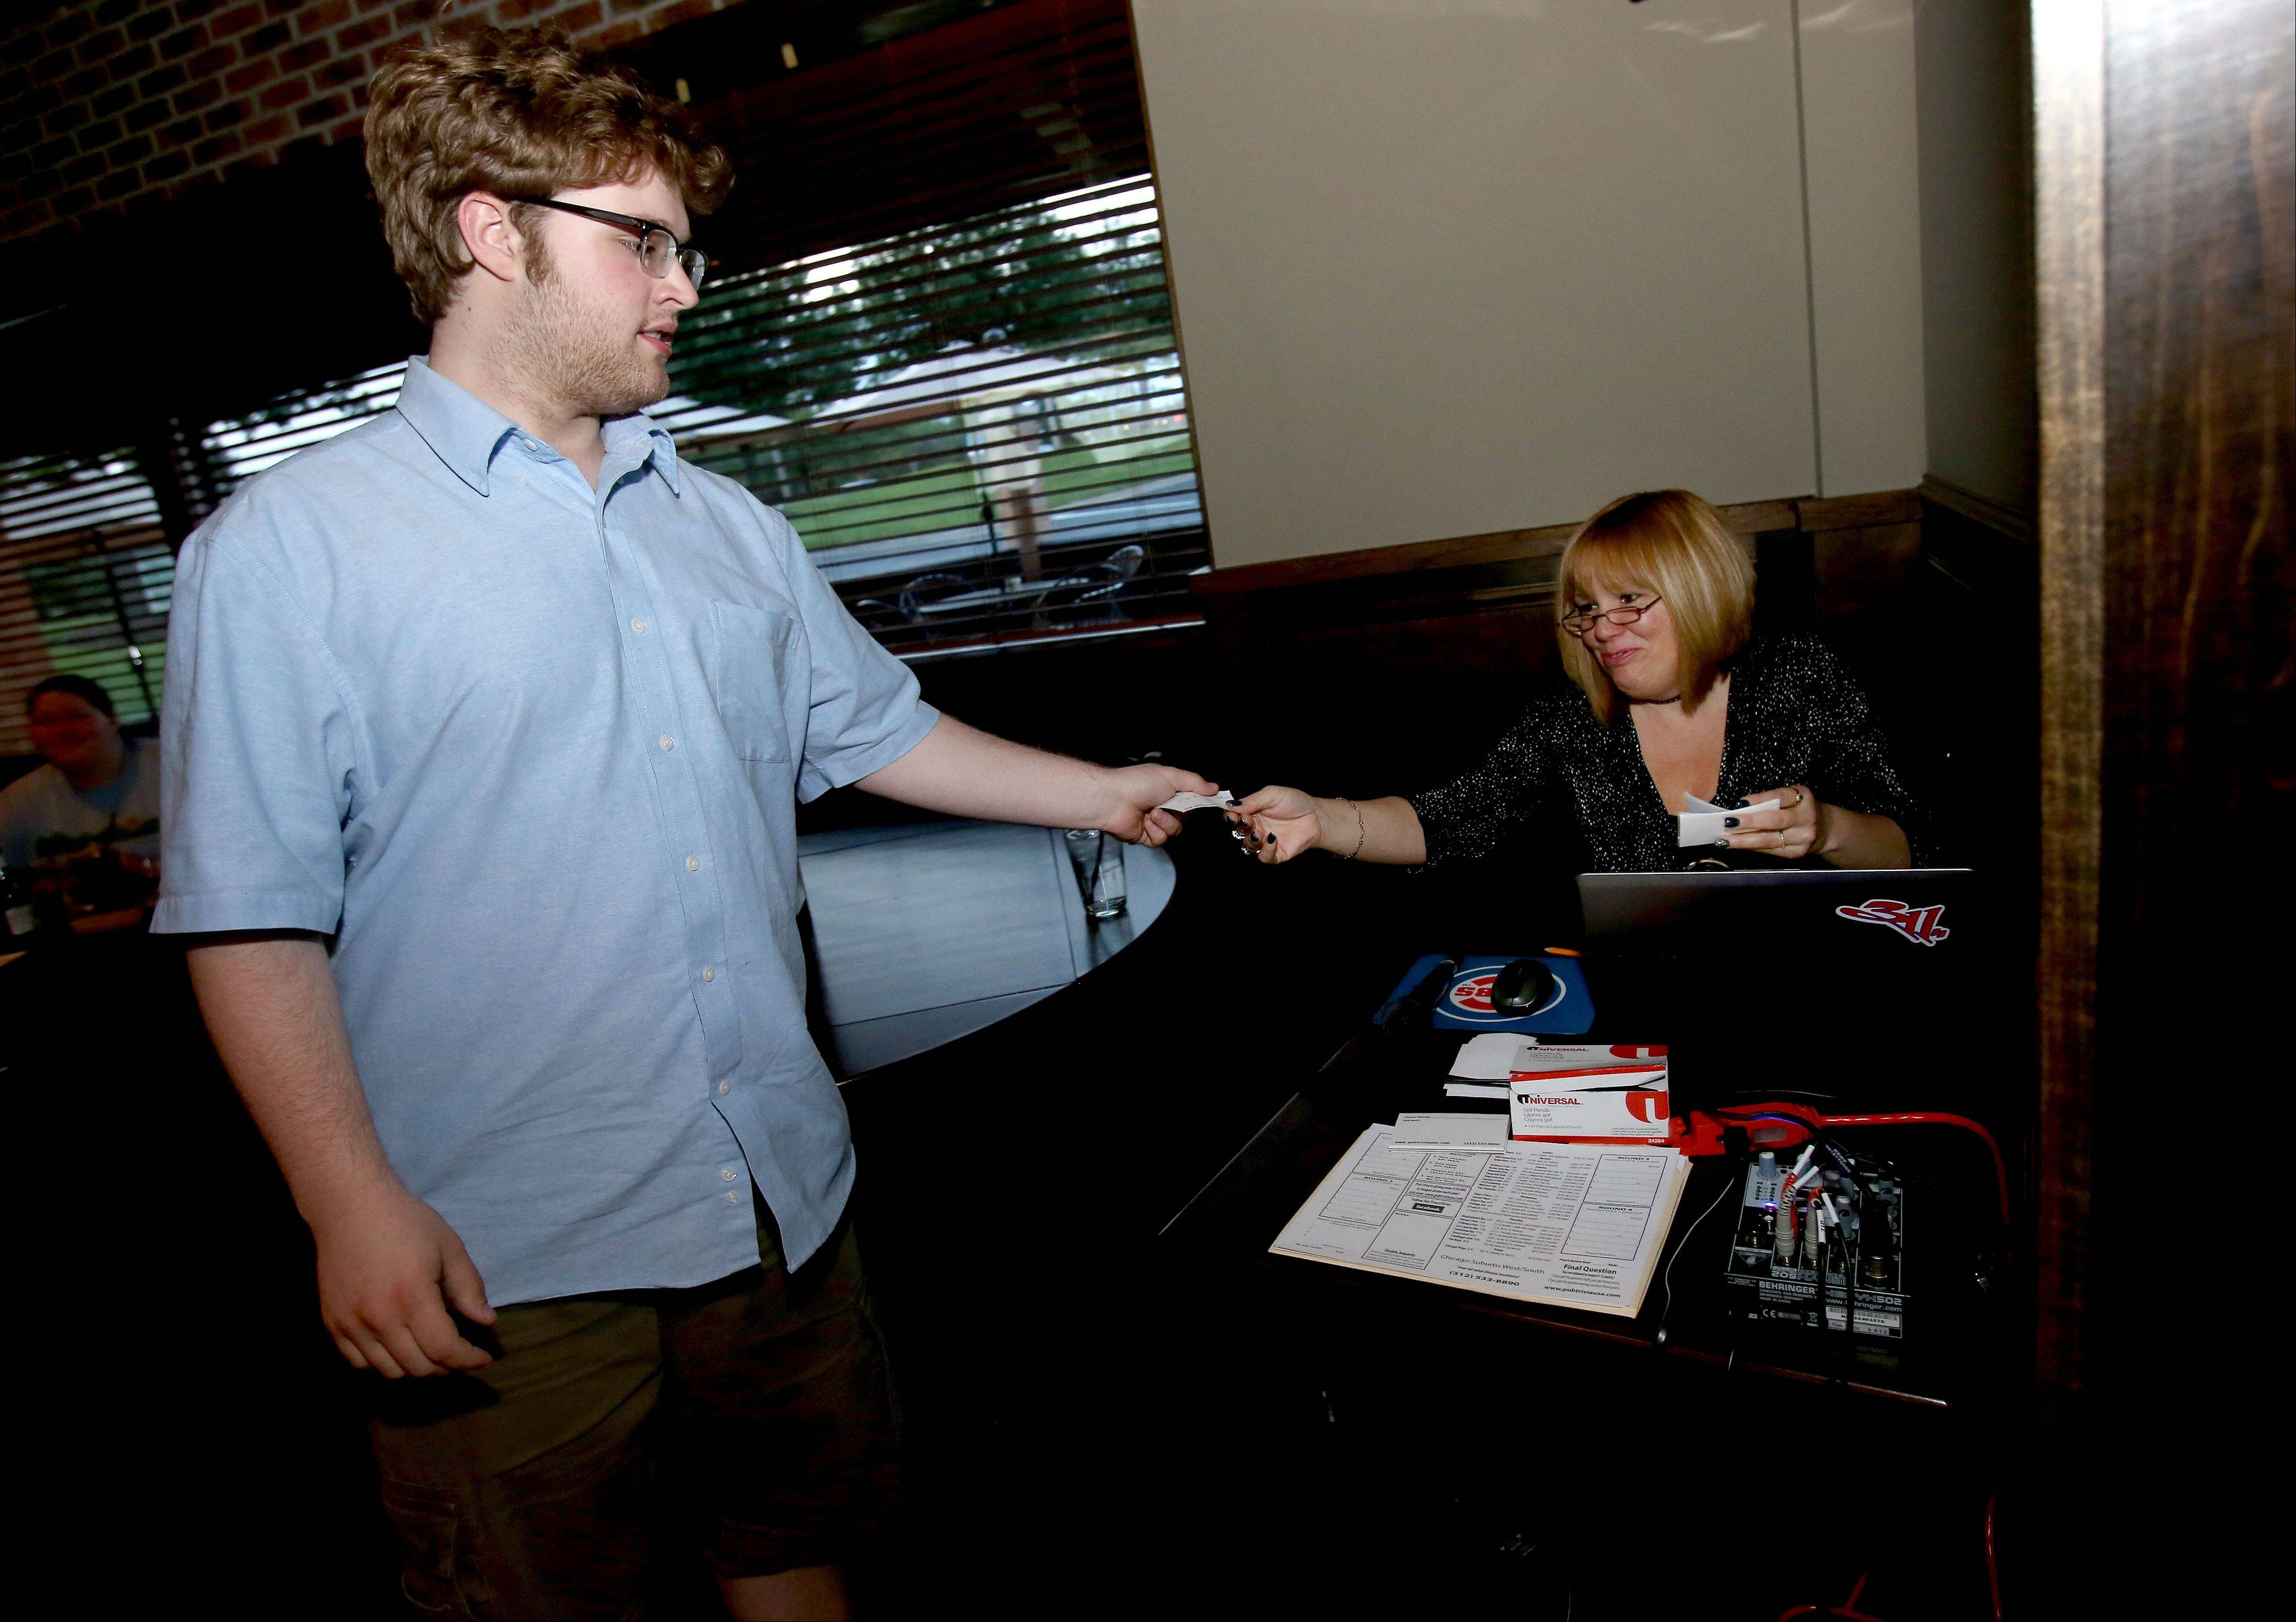 Noah Wright of Wheaton hands in his answer to Donna Breckenridge of Pub Trivia U.S.A. during Tuesday night trivia night at Warren's Ale House in Wheaton.